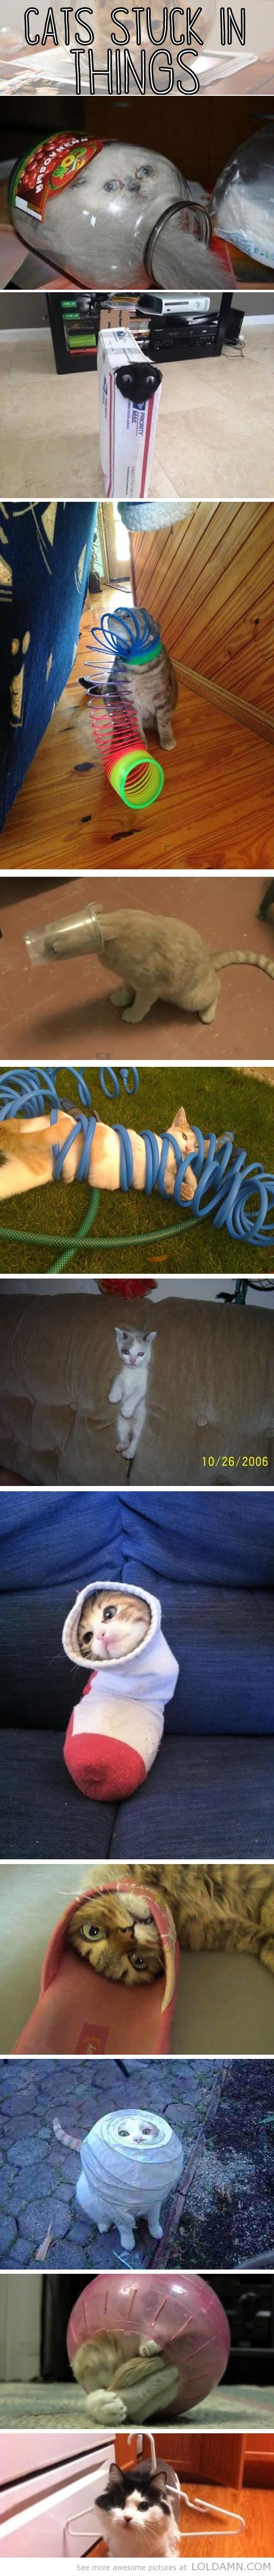 Funny cats: Cats stuck in things